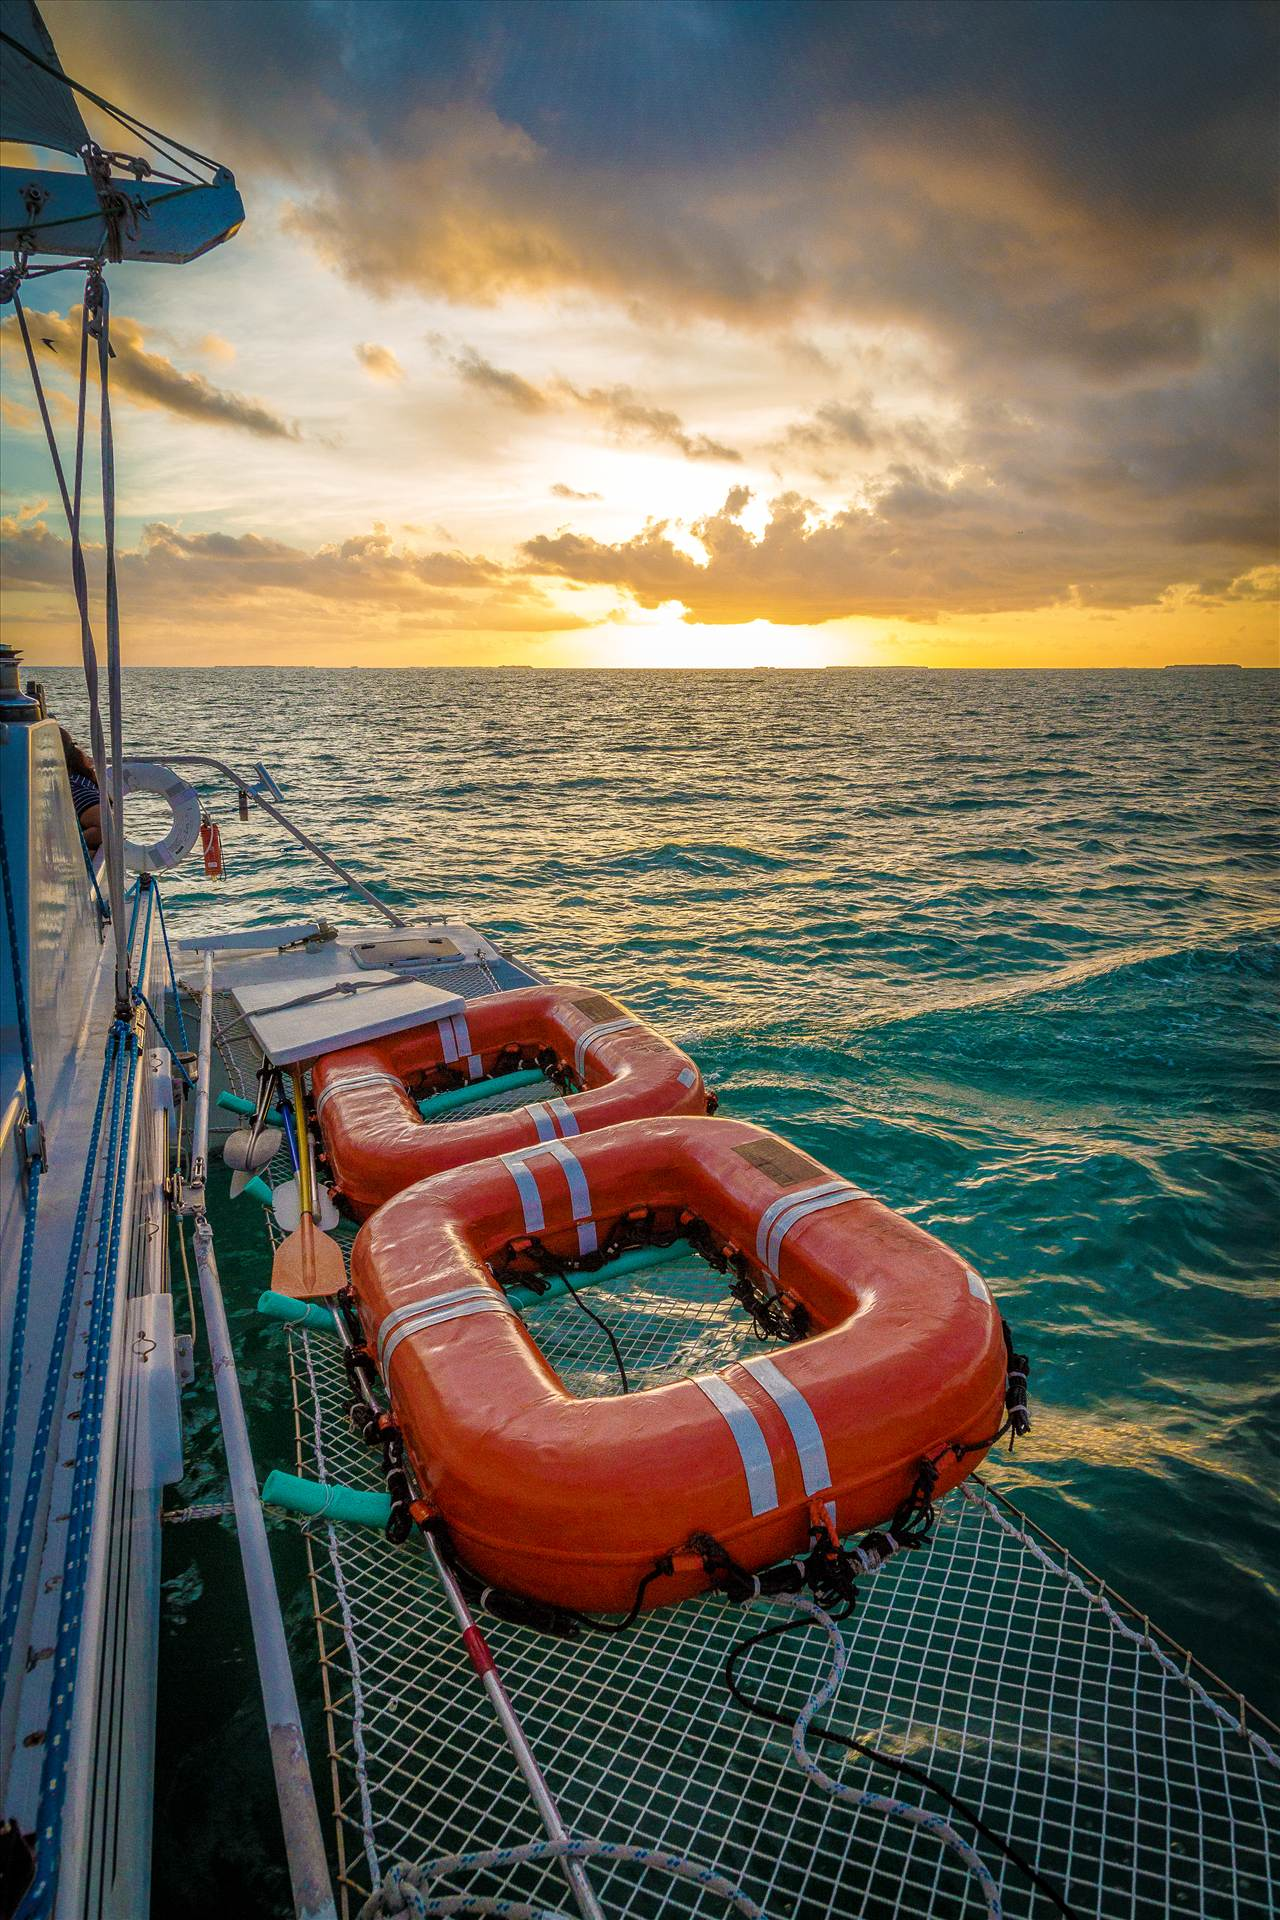 Sunset Cruise 1 - Equipment on the back of the catamaran, on a cruise outside of Key West. by D Scott Smith